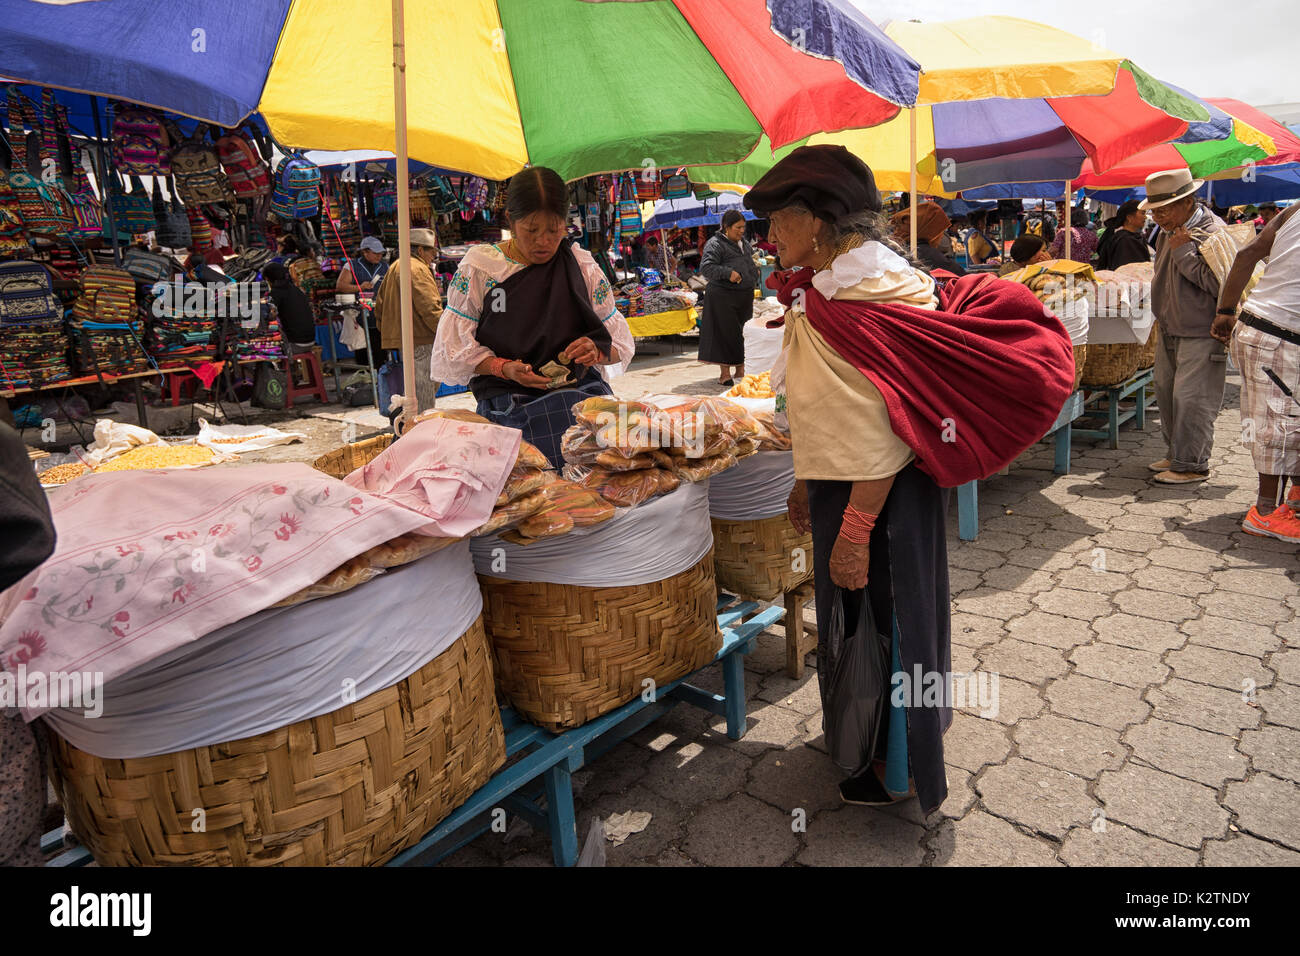 May 6, 2017 Otavalo, Ecuador: indigenous quechua women  in the Saturday market - Stock Image